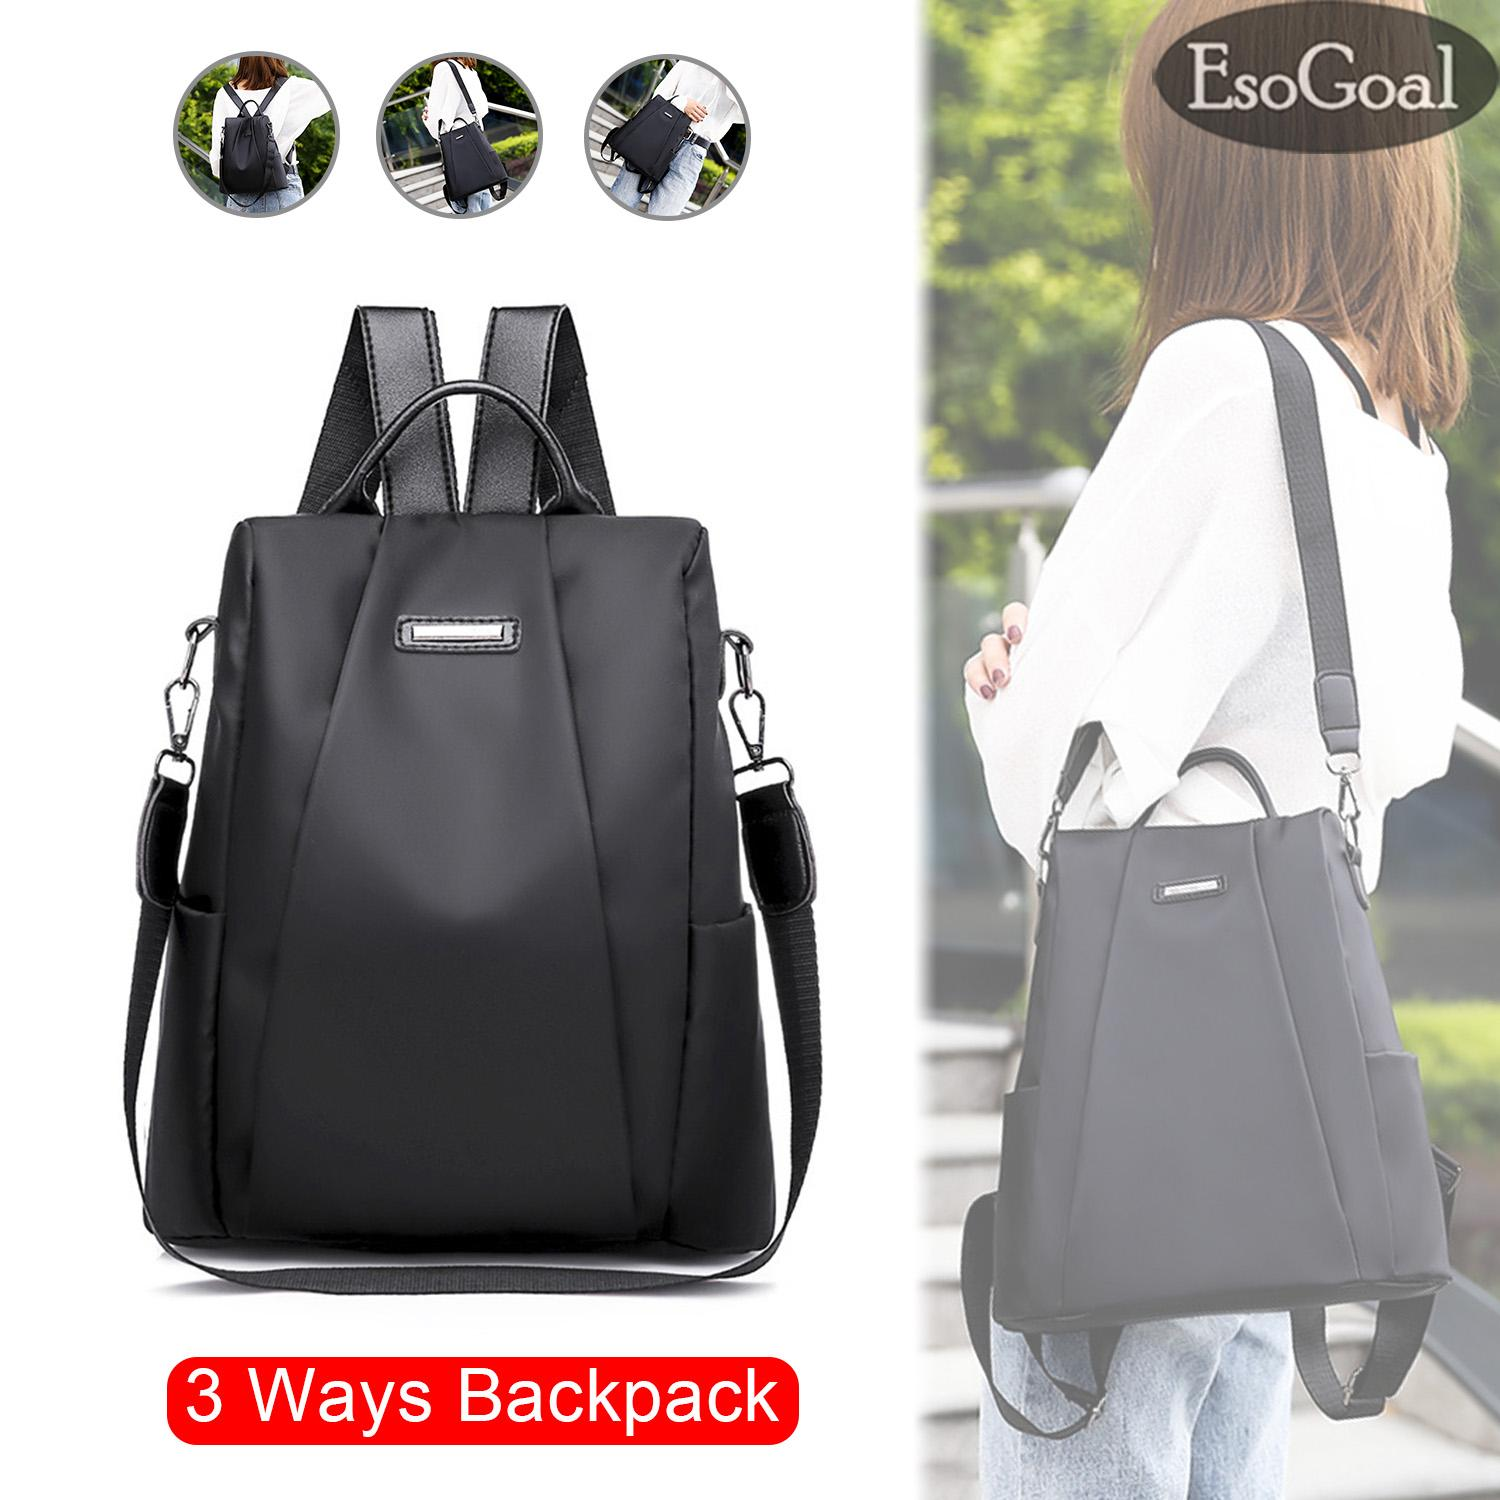 98b93cf7046b EsoGoal Fashion Women Backpack Shoulder Bag Korea Style Anti-theft Backpack  College School Bag For